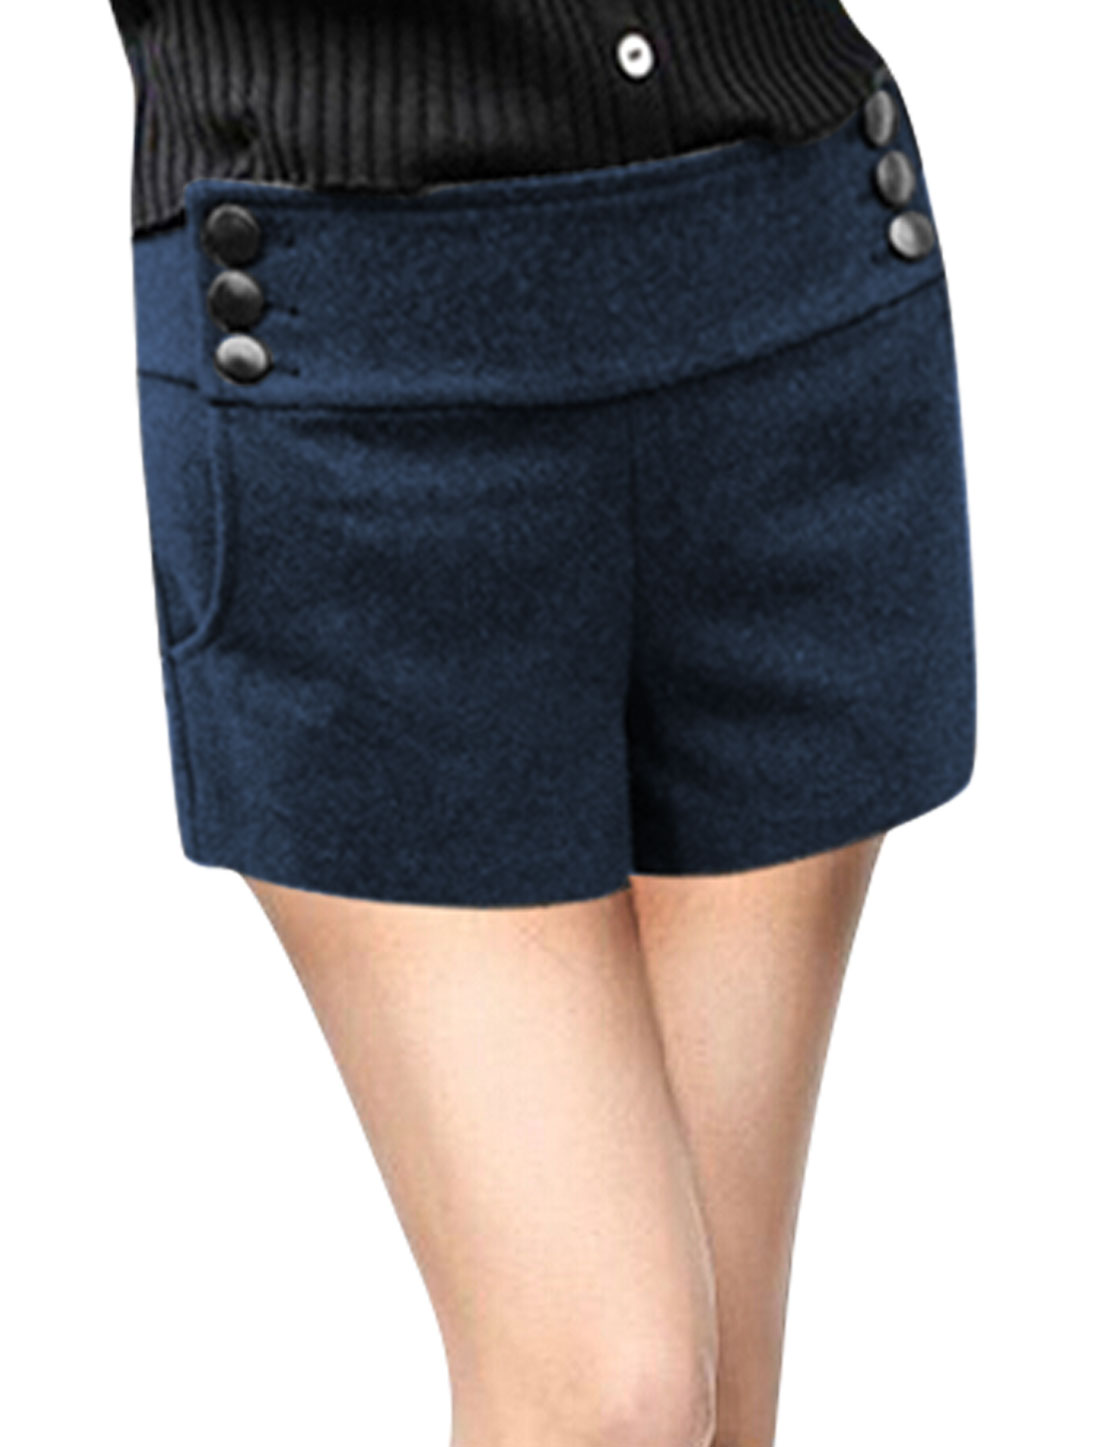 Natural Waist Button Up Sides Navy Blue Worsted Shorts for Women XL